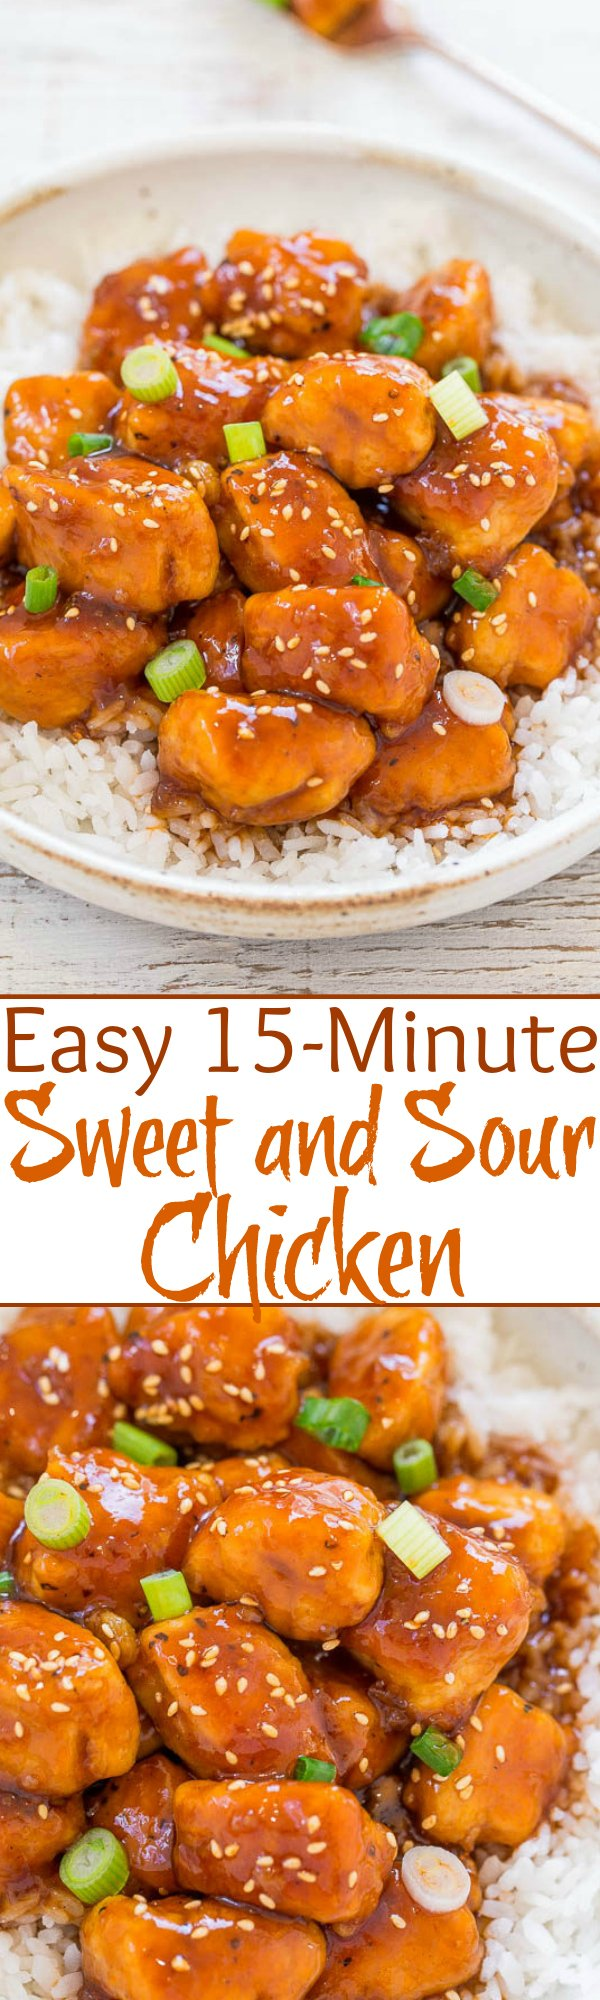 Easy 15-Minute Sweet and Sour Chicken - Faster, easier, healthier, and tastes BETTER than takeout or a restaurant!! Perfect balance of sweet yet sour Asian flavors that the whole family will LOVE!!